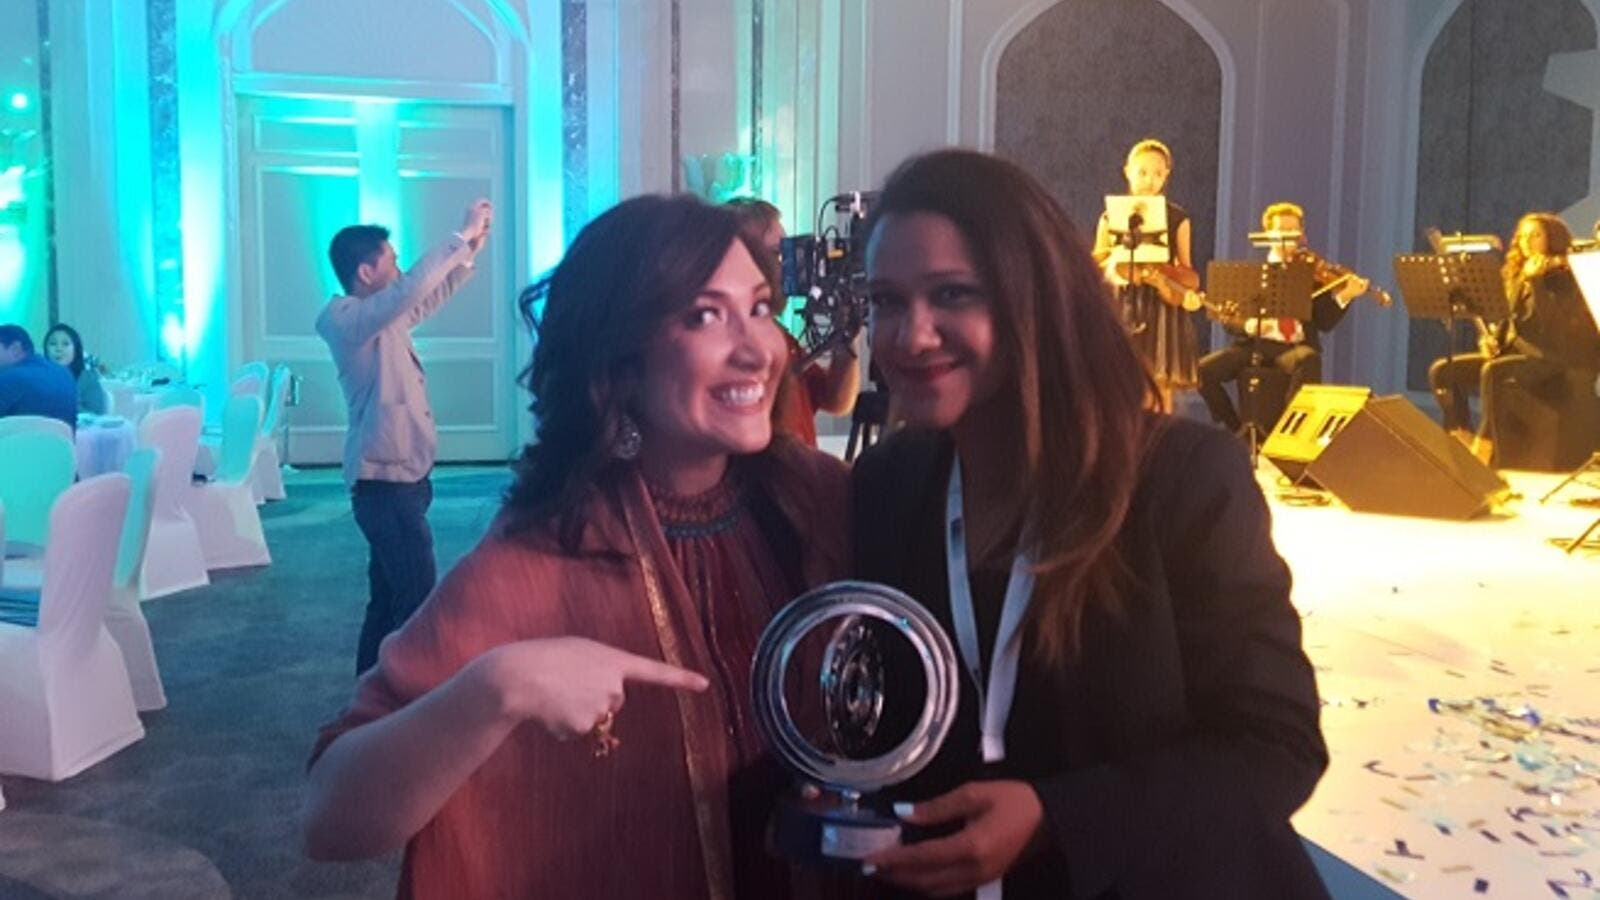 In this interview, Jordanian entrepreneur Rola Fayyad tells us about her social app 'Friendture', her life as an entrepreneur and the funding she received from Qatar. (Pictured here: Rola Fayyad with ex-Facebook executive Randi Zuckerberg)